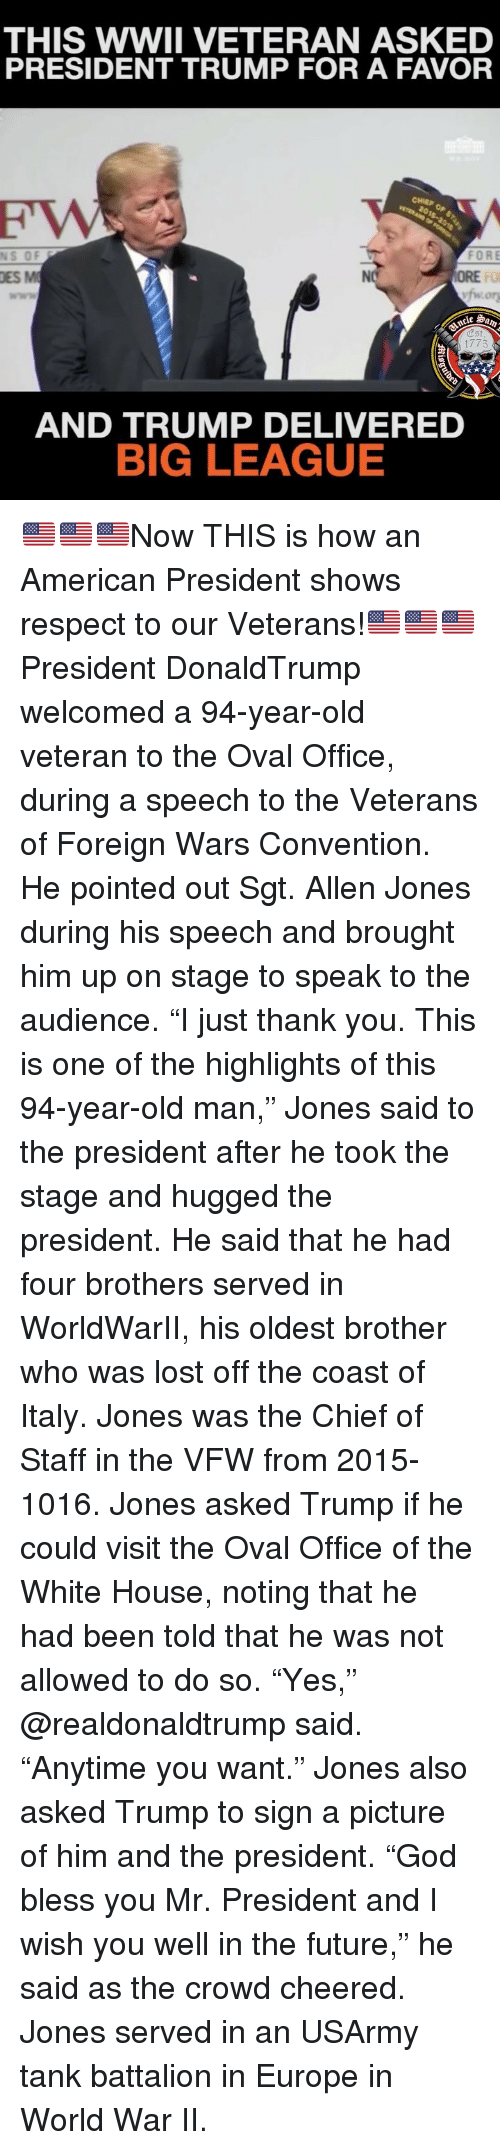 "mr president: THIS WWII VETERAN ASKE  PRESIDENT TRUMP FOR A FAVOR  CHIEP  NS  OF  FORE  DES M  ORE  FU  1775  AND TRUMP DELIVERED  BIG LEAGUE 🇺🇸🇺🇸🇺🇸Now THIS is how an American President shows respect to our Veterans!🇺🇸🇺🇸🇺🇸 President DonaldTrump welcomed a 94-year-old veteran to the Oval Office, during a speech to the Veterans of Foreign Wars Convention. He pointed out Sgt. Allen Jones during his speech and brought him up on stage to speak to the audience. ""I just thank you. This is one of the highlights of this 94-year-old man,"" Jones said to the president after he took the stage and hugged the president. He said that he had four brothers served in WorldWarII, his oldest brother who was lost off the coast of Italy. Jones was the Chief of Staff in the VFW from 2015-1016. Jones asked Trump if he could visit the Oval Office of the White House, noting that he had been told that he was not allowed to do so. ""Yes,"" @realdonaldtrump said. ""Anytime you want."" Jones also asked Trump to sign a picture of him and the president. ""God bless you Mr. President and I wish you well in the future,"" he said as the crowd cheered. Jones served in an USArmy tank battalion in Europe in World War II."